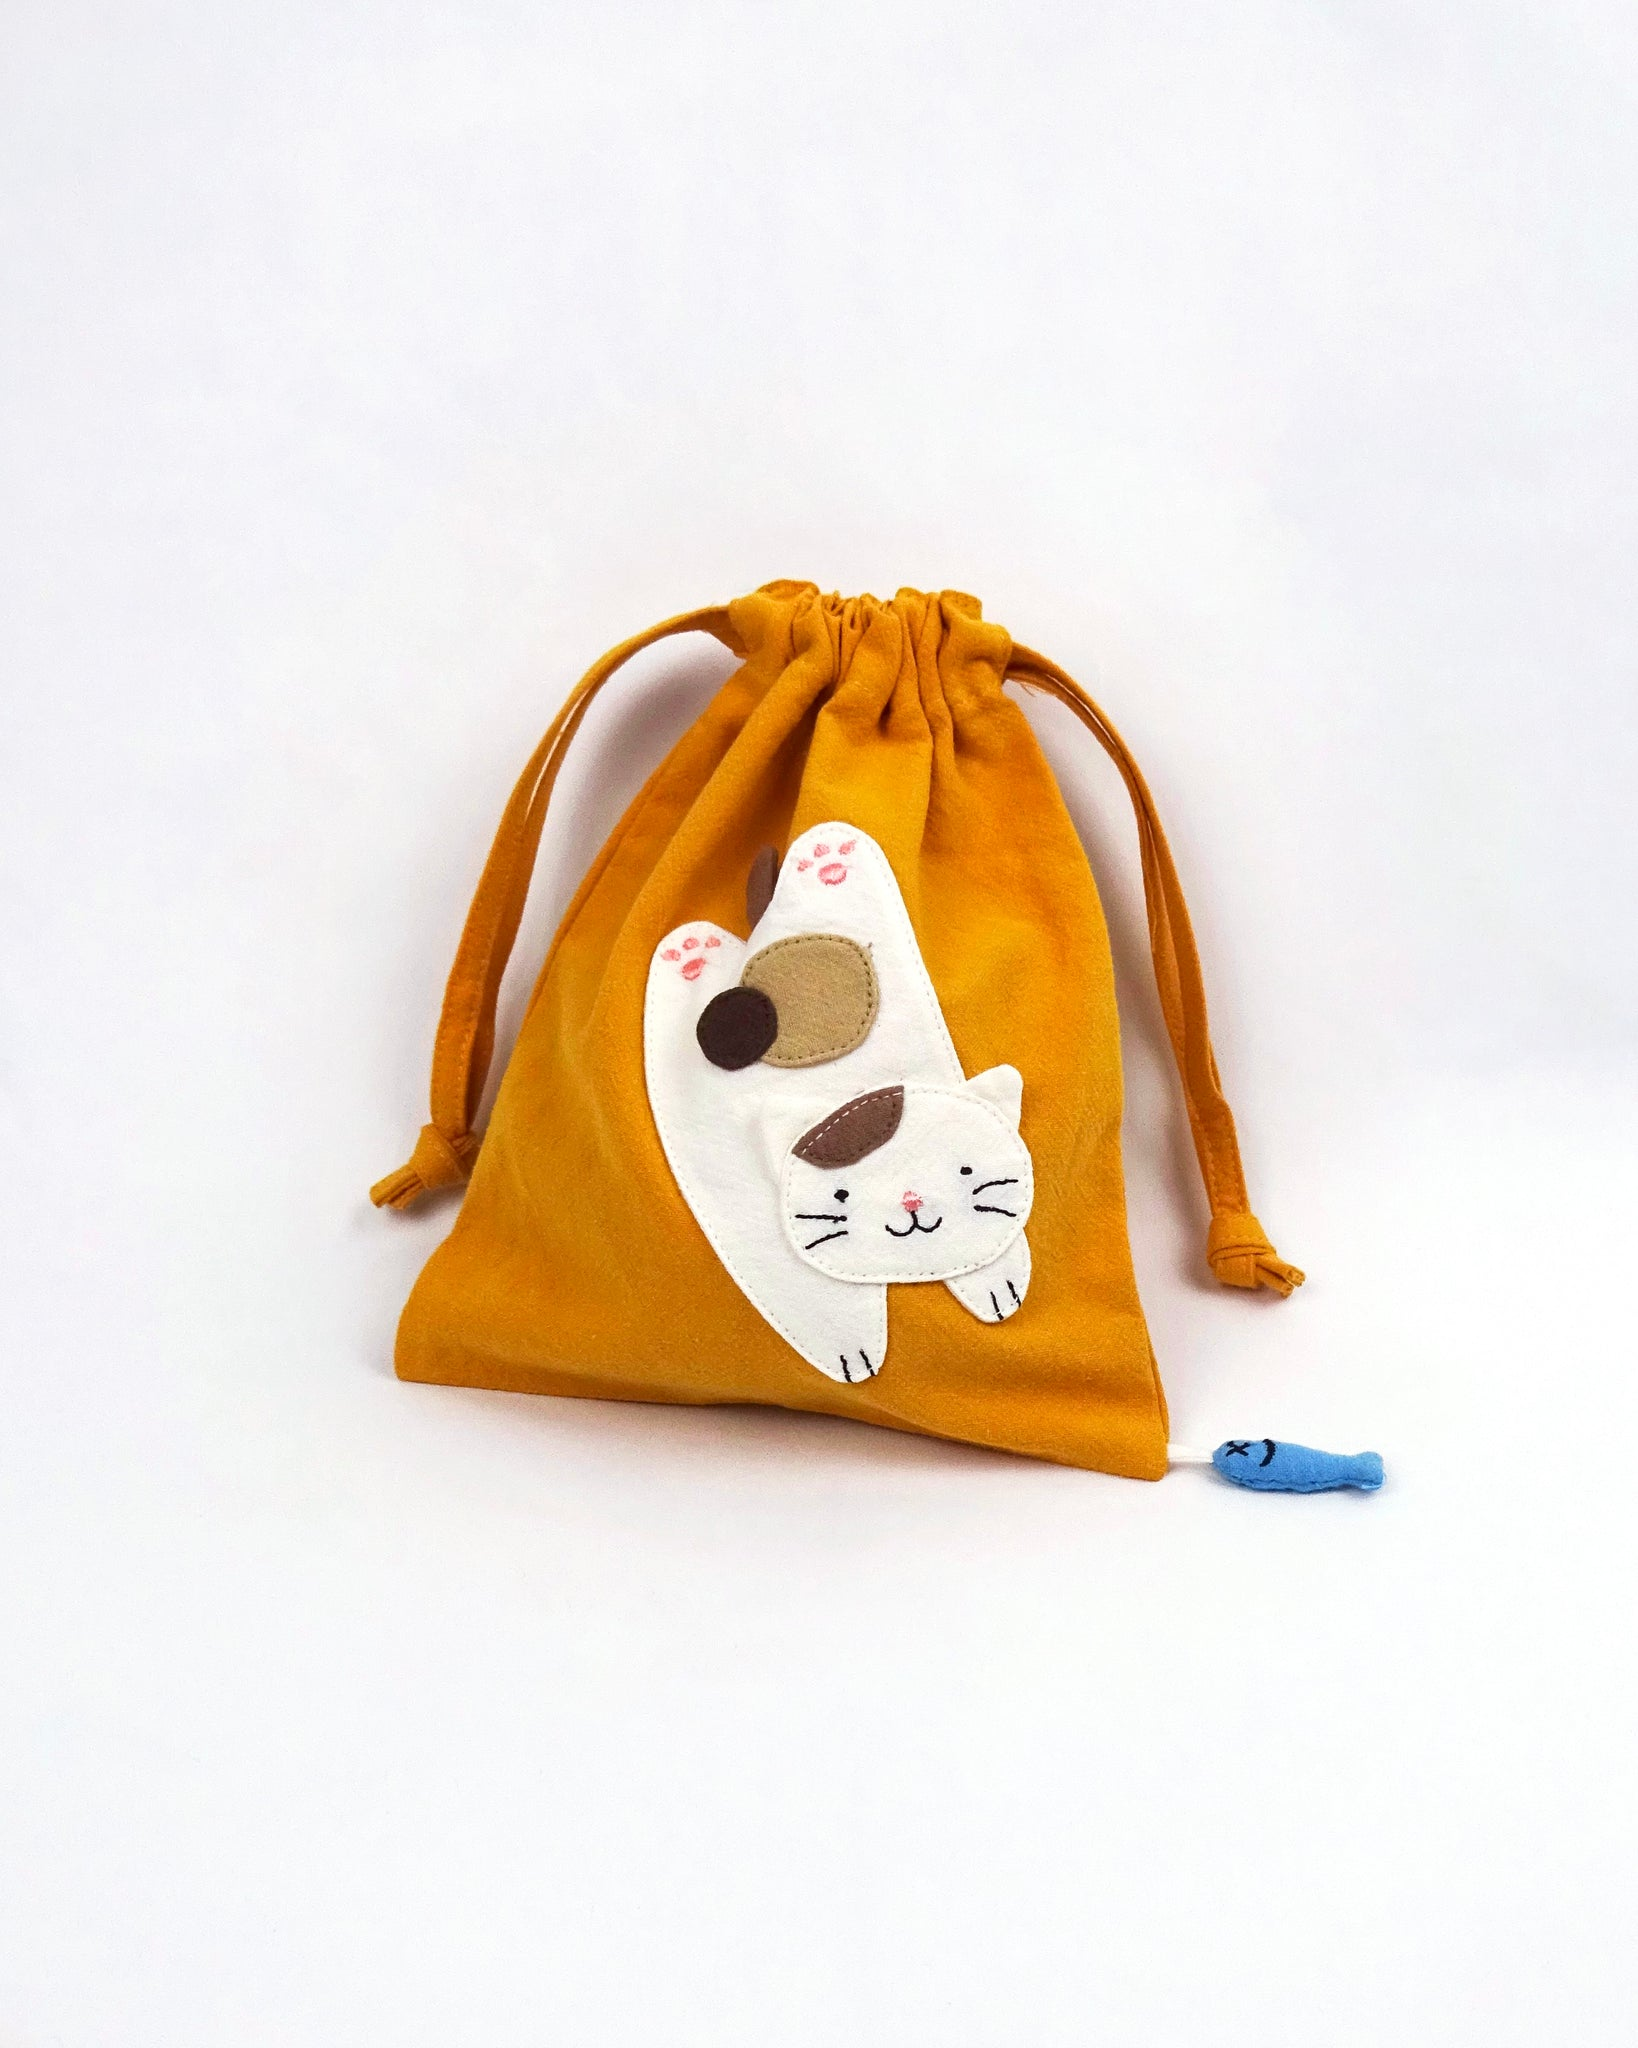 Cat Pouch in golden yellow with cat appliqué, embroidery detail, two-sided drawstring enclosure, small blue fish hanging at the bottom right corner.